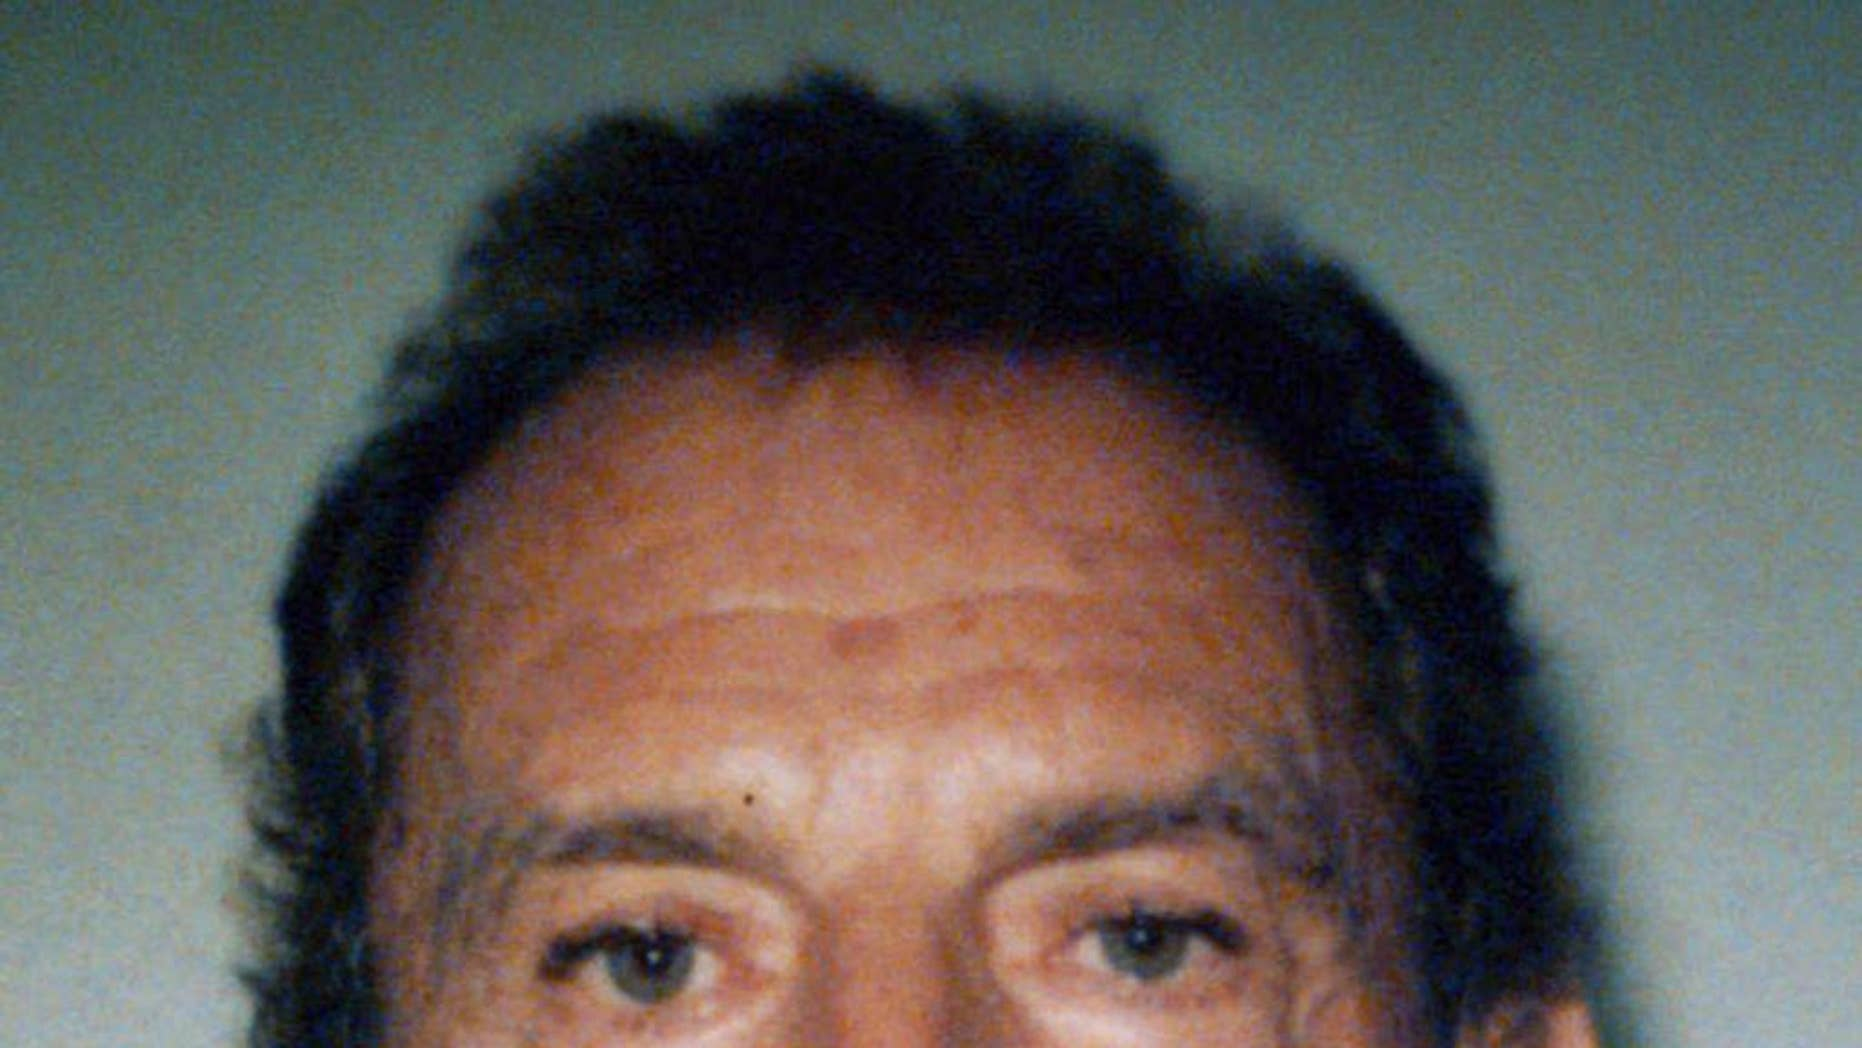 "FILE - This 1995 file photo taken in West Palm Beach, Fla., and released by the FBI shows Francis P. ""Cadillac Frank"" Salemme. Despite moving more than 1,000 miles from Boston, the ex-mob boss remained an ardent supporter of the New England Patriots while in witness protection. Members of an Atlanta-based Patriots fan club tell WPRI-TV in Providence, R.I., that Salemme attended at least three of the group's game watching parties under an assumed name during the past two seasons. Salemme was arrested Wednesday, Aug. 10, 2016, in Connecticut on charges he murdered a witness in 1993. (Federal Bureau of Investigation via AP, File)"